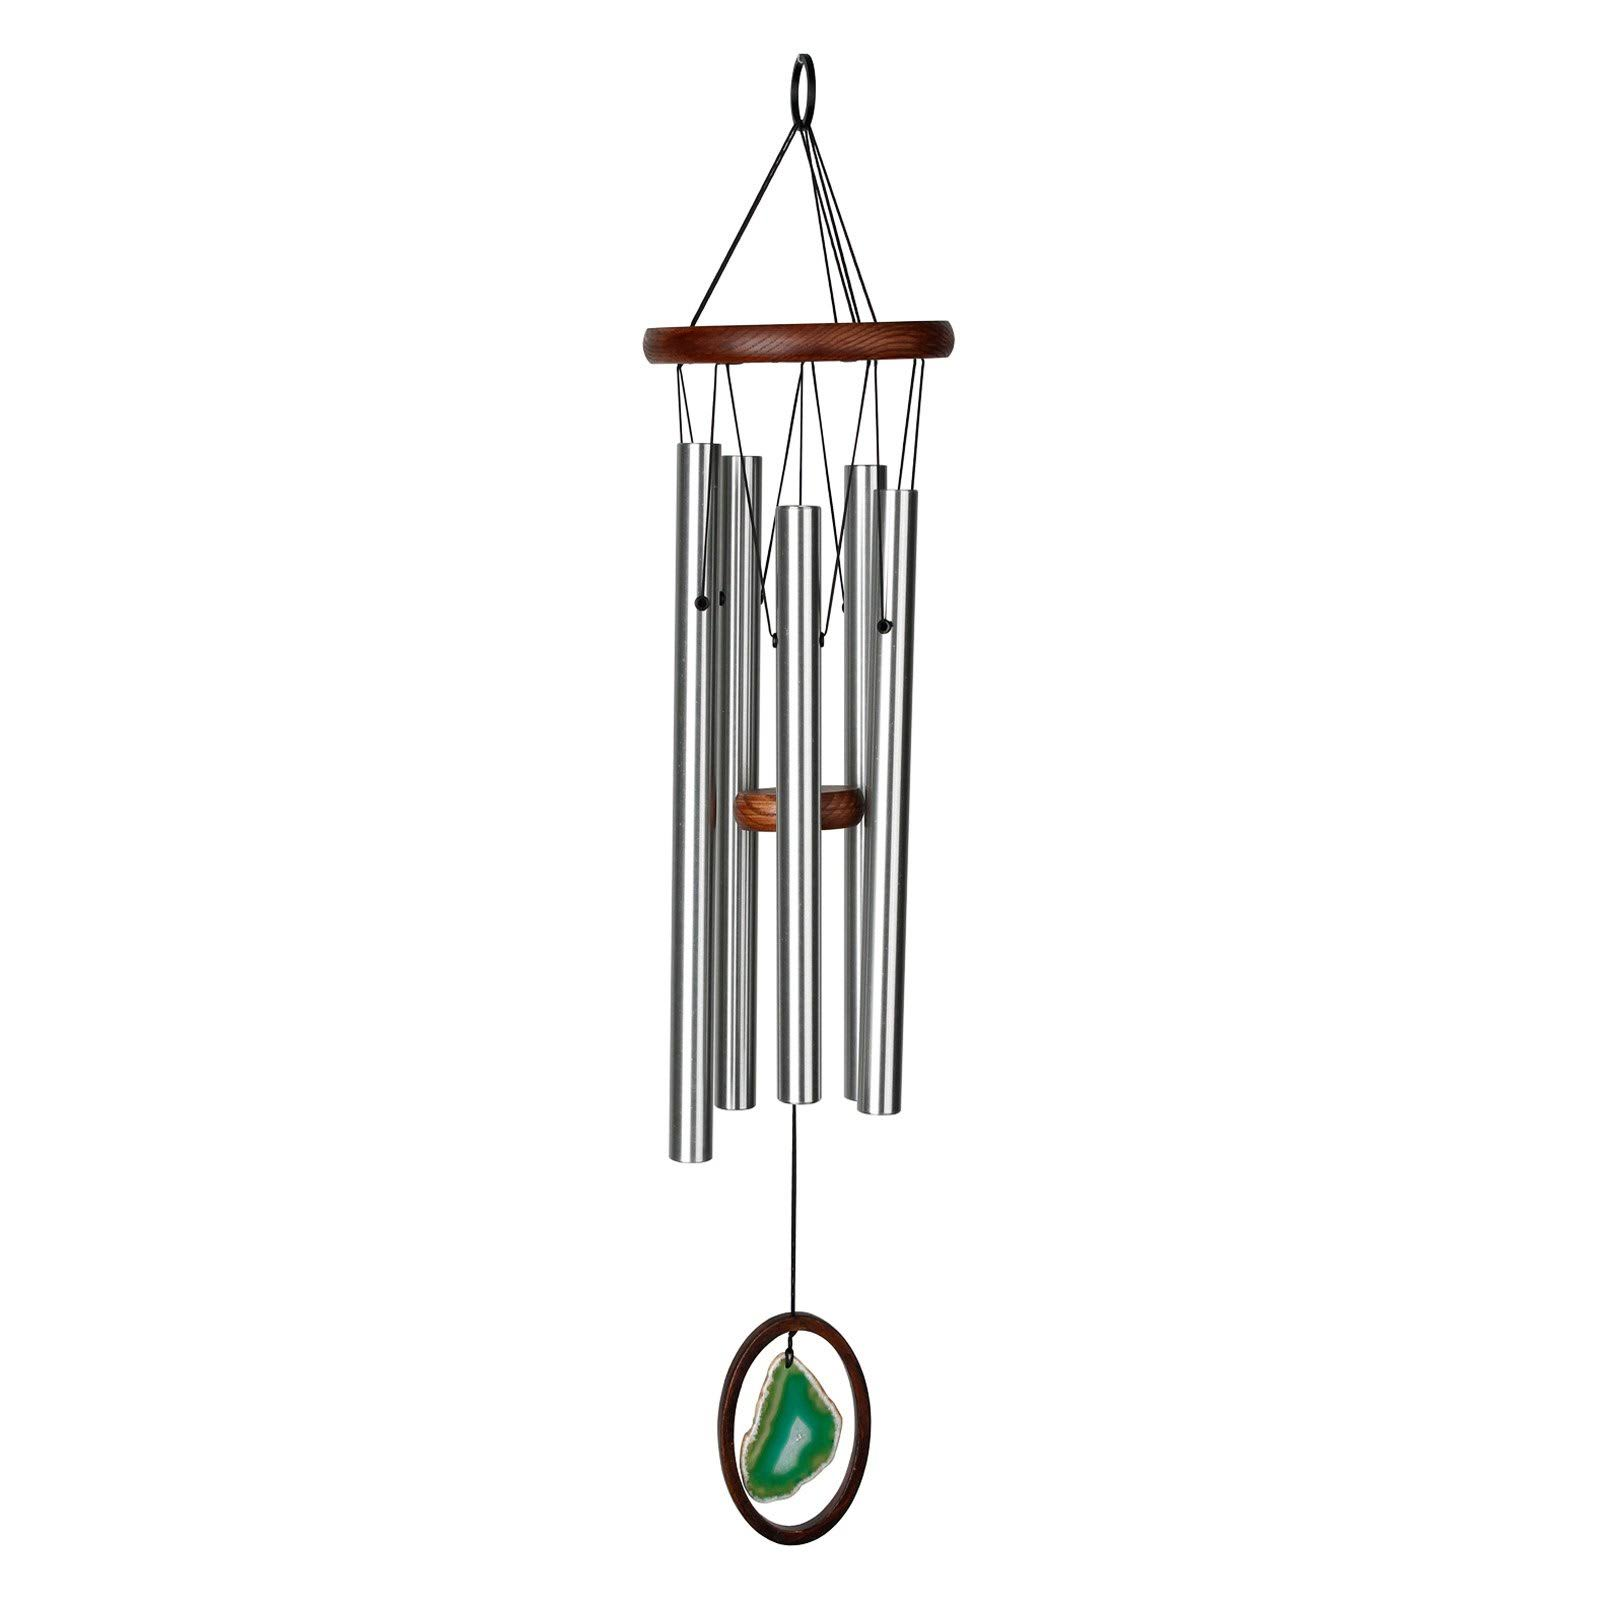 Woodstock Chimes Agate Chime - Large, Green